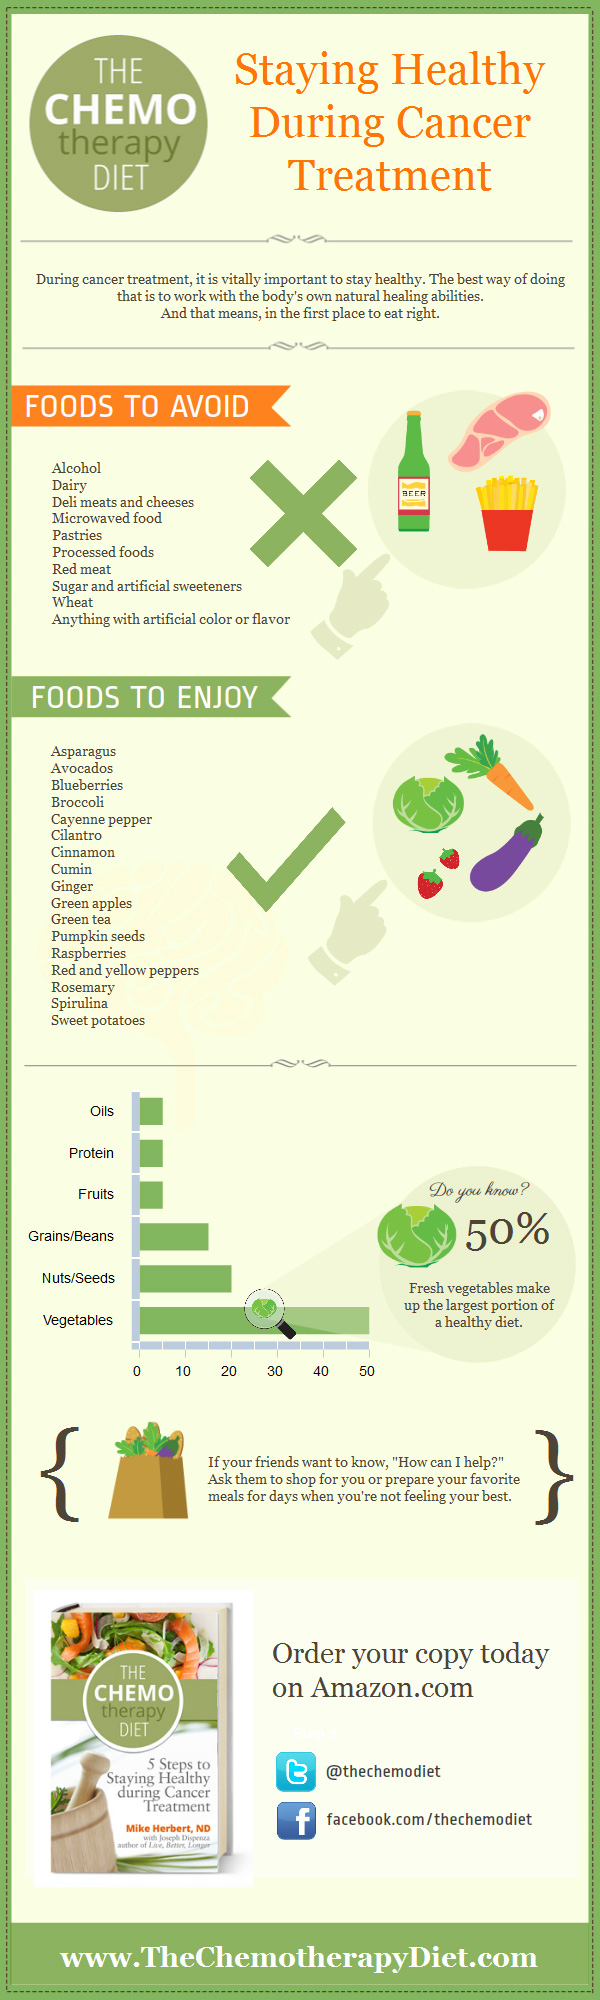 the-chemo-therapy-diet-staying-healthy-during-cancer-treatment